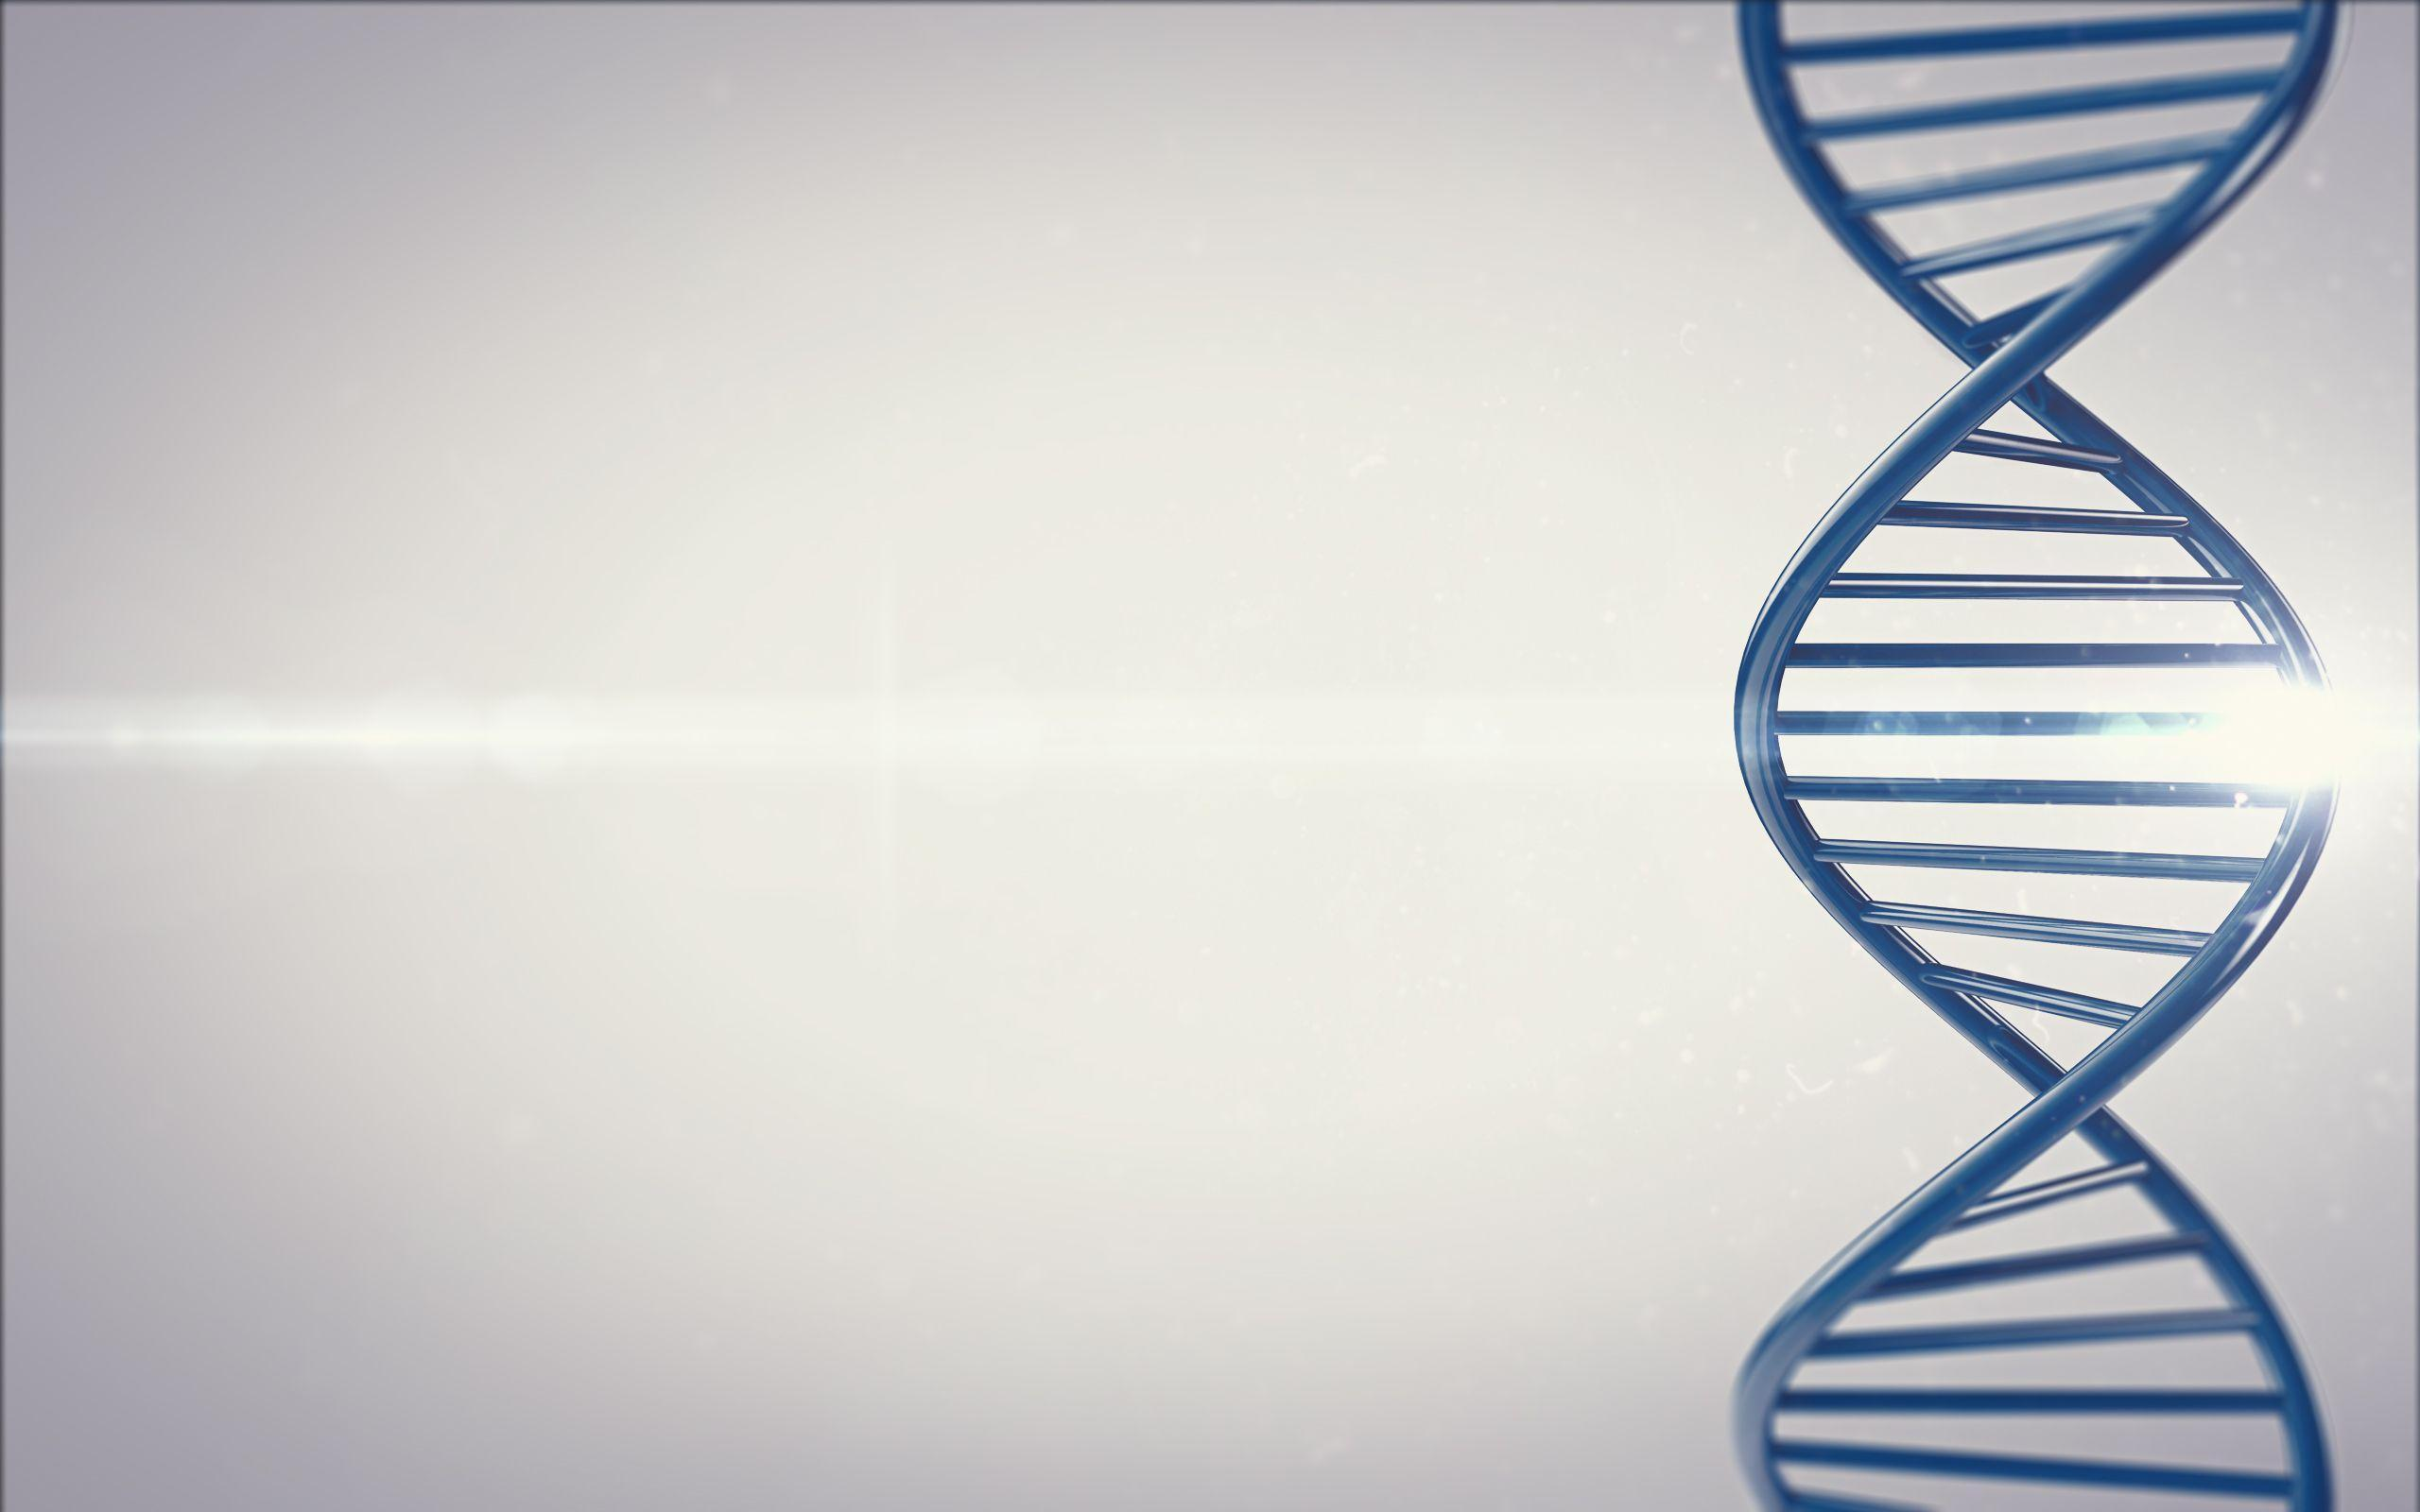 dna helix animated wallpaper